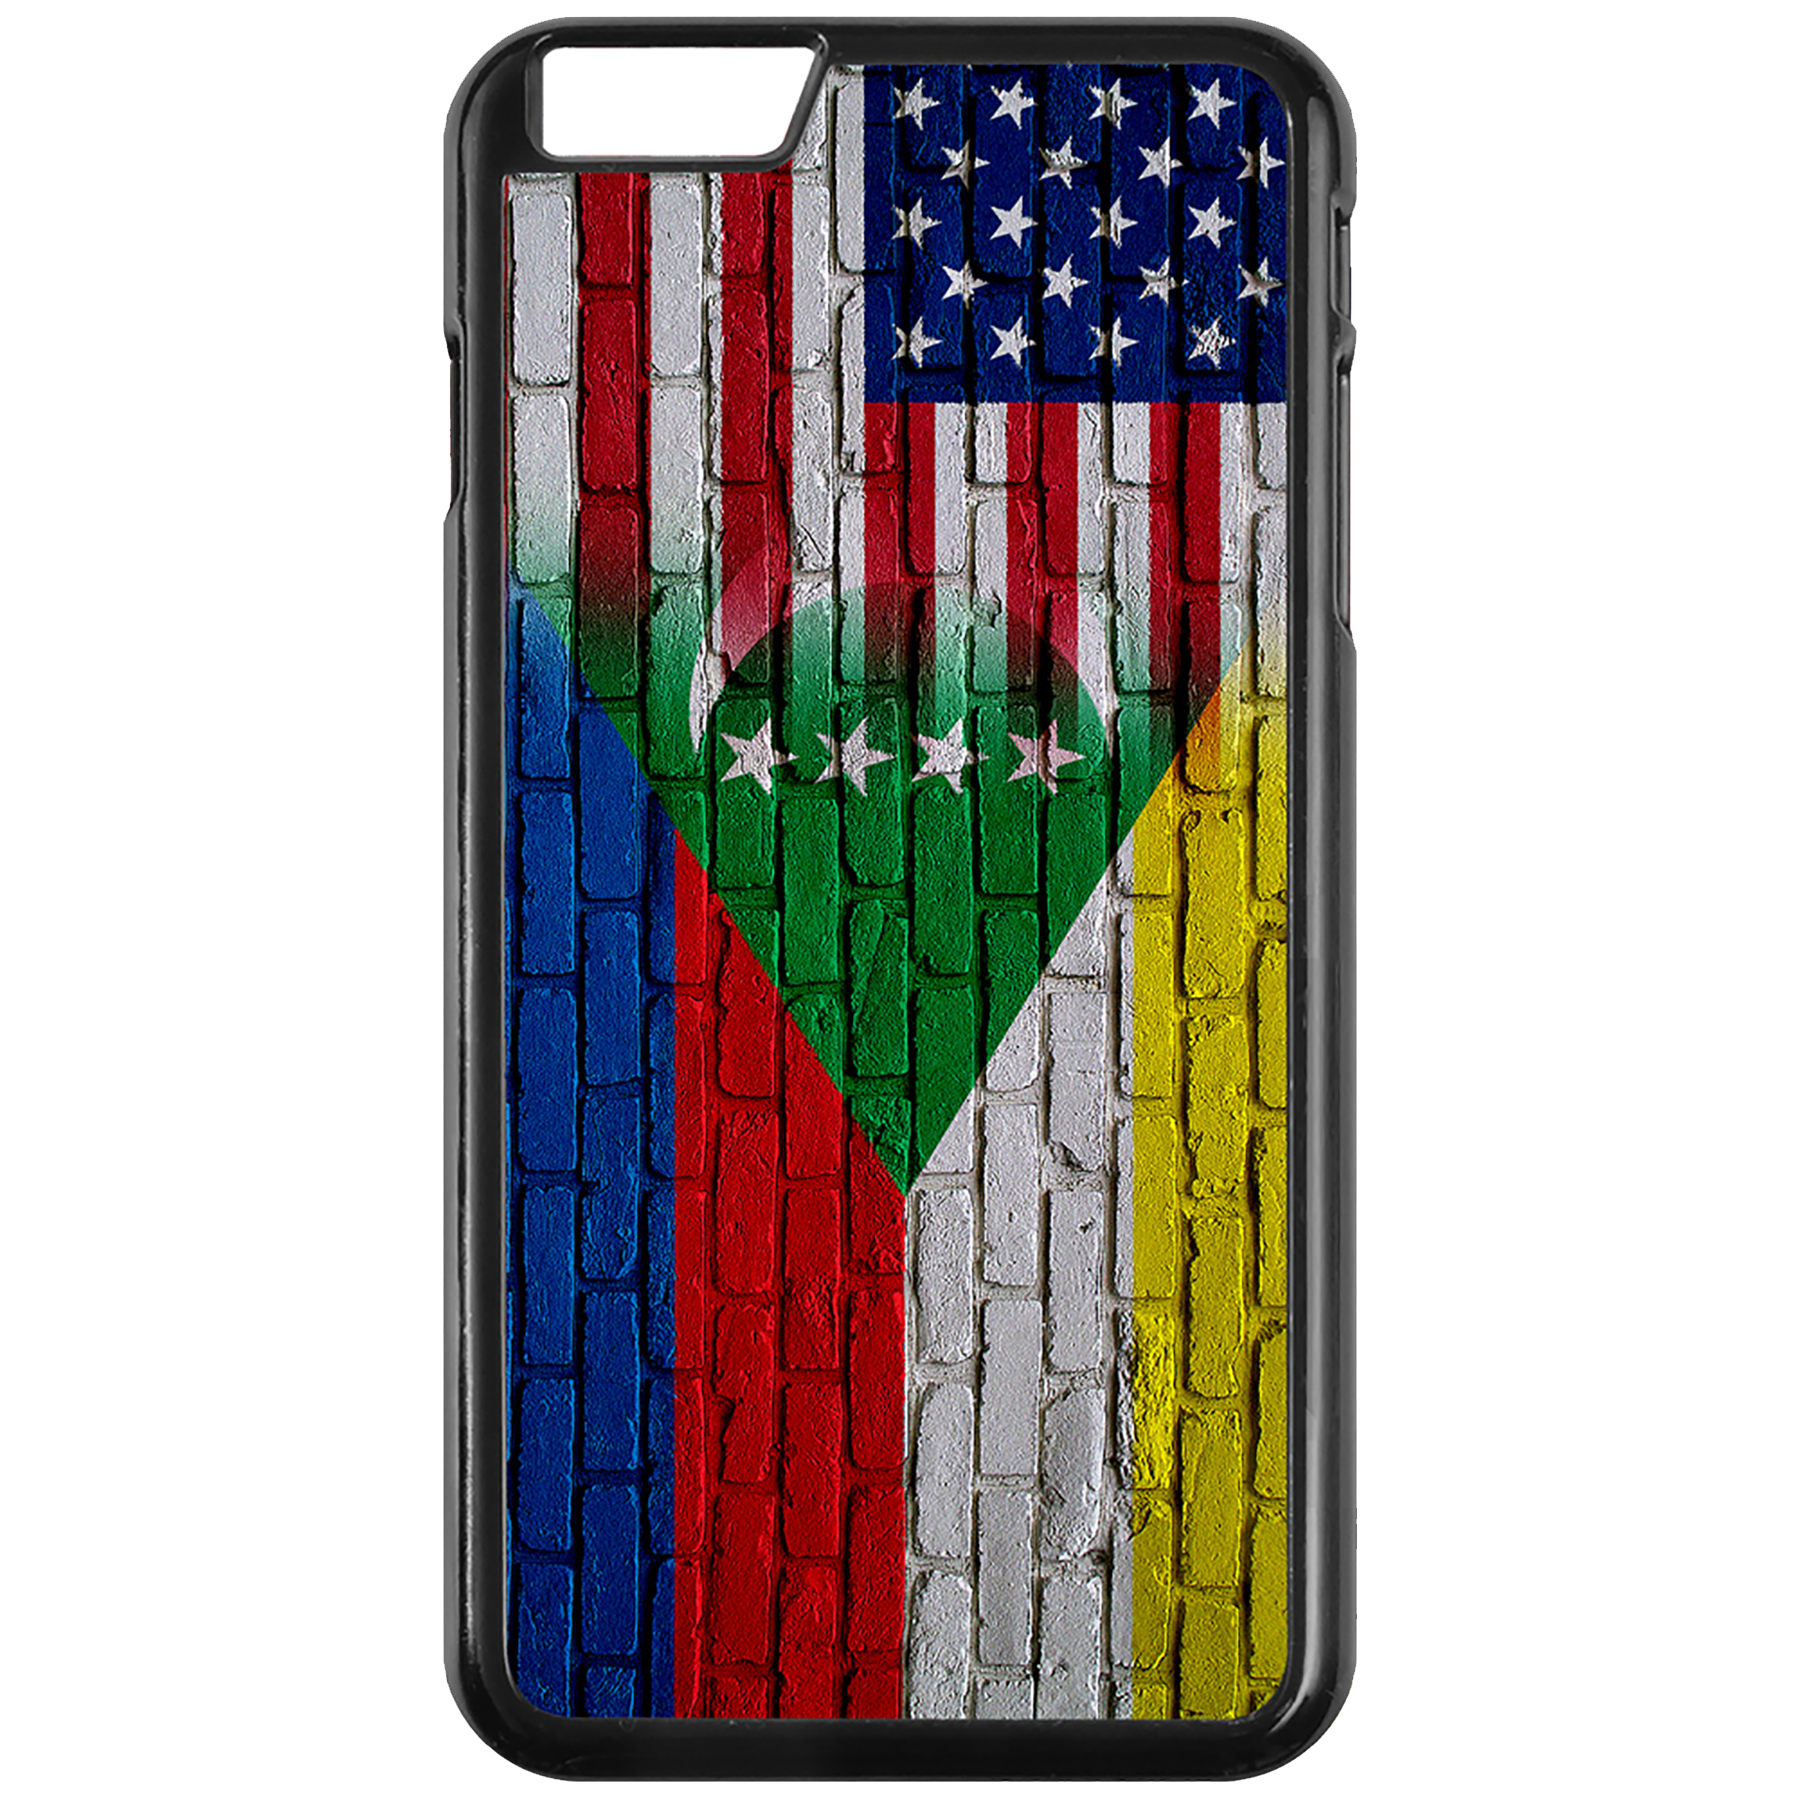 Apple-iPhone-Case-with-Flag-of-Comoros-Comorian-Many-Design-Options thumbnail 64